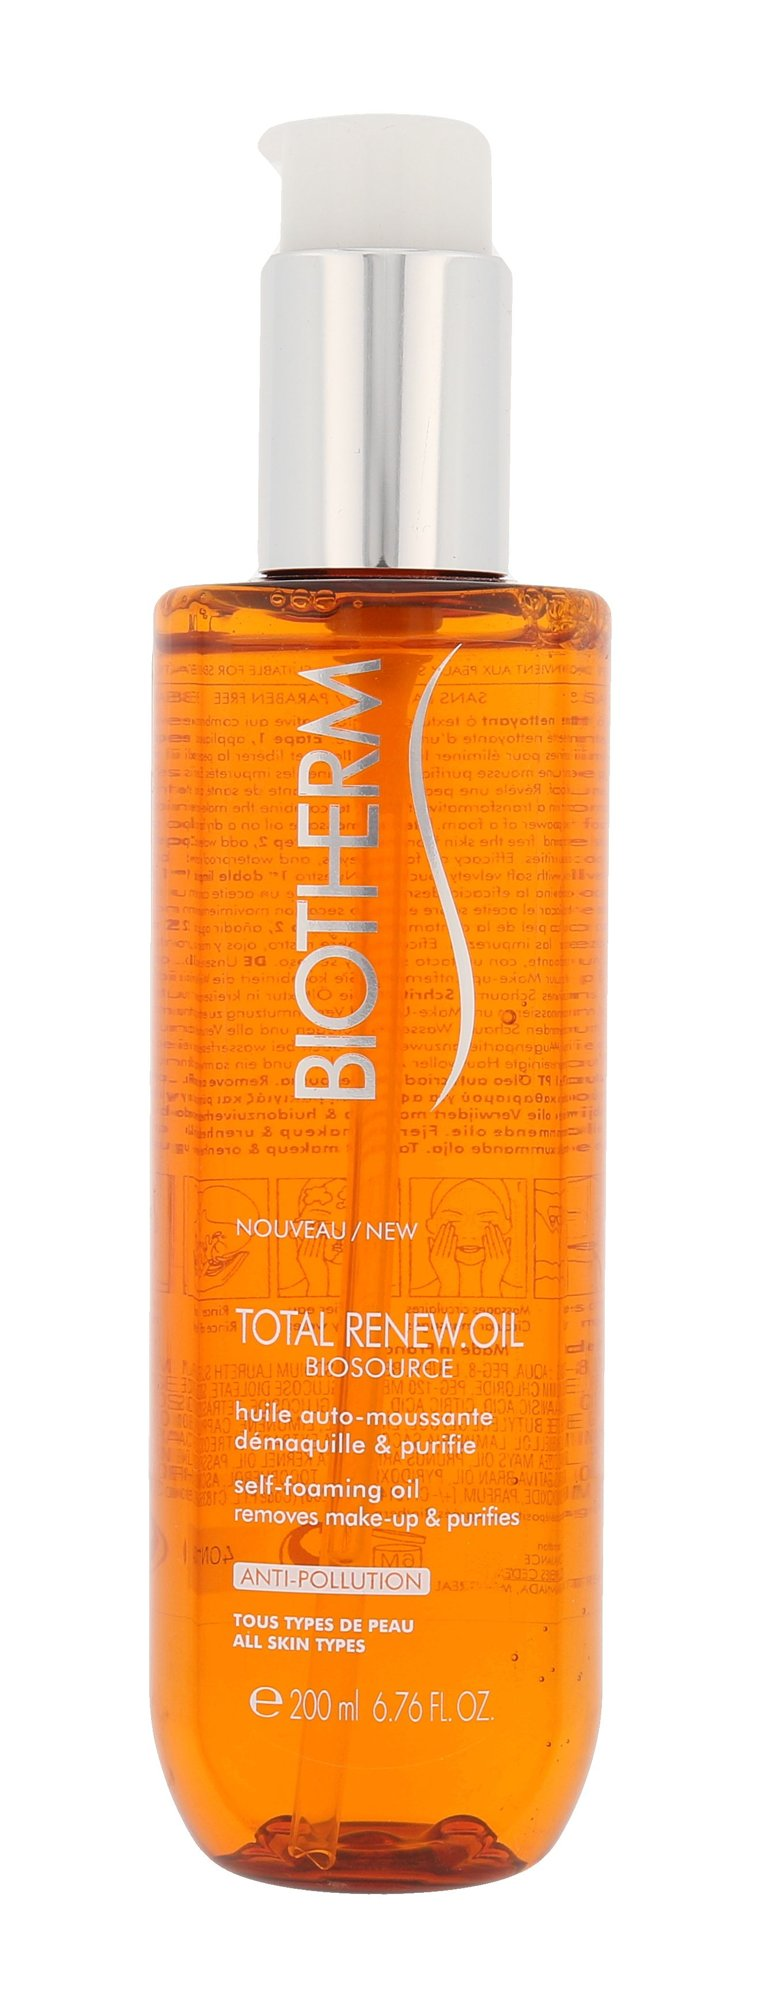 Biotherm Biosource Cosmetic 200ml  Total Renew Oil